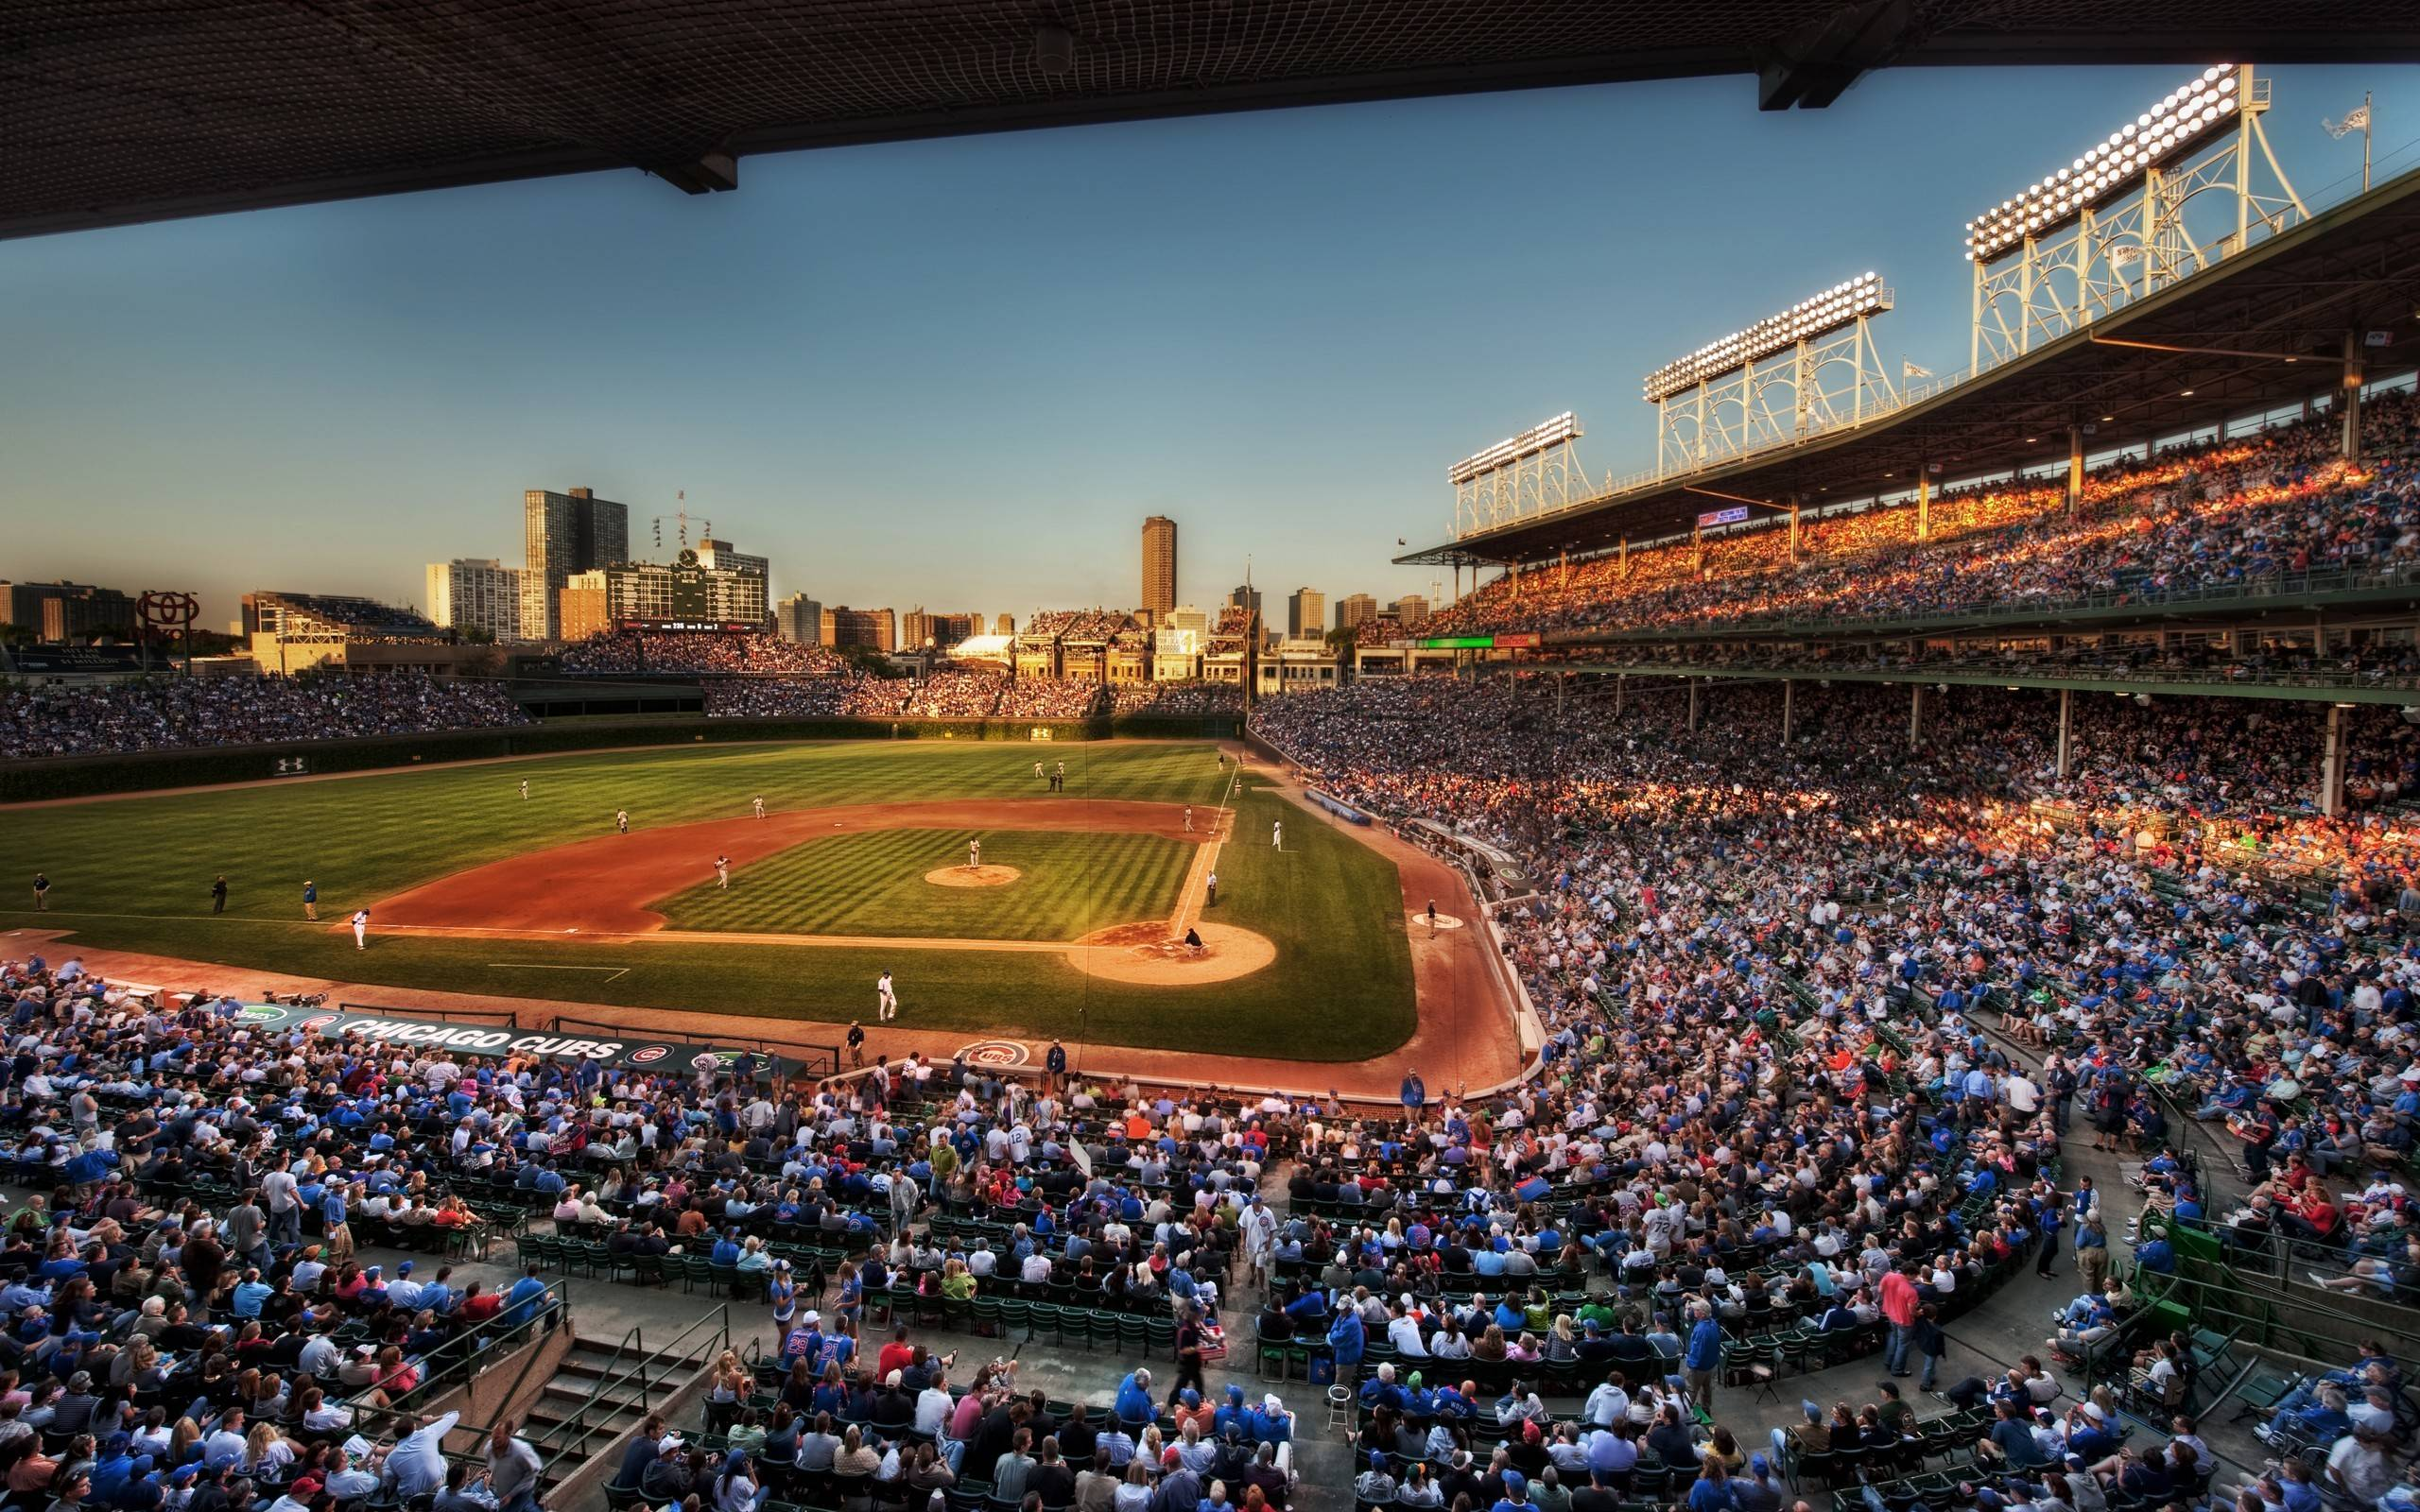 mlb baseball fields wallpaper - photo #40